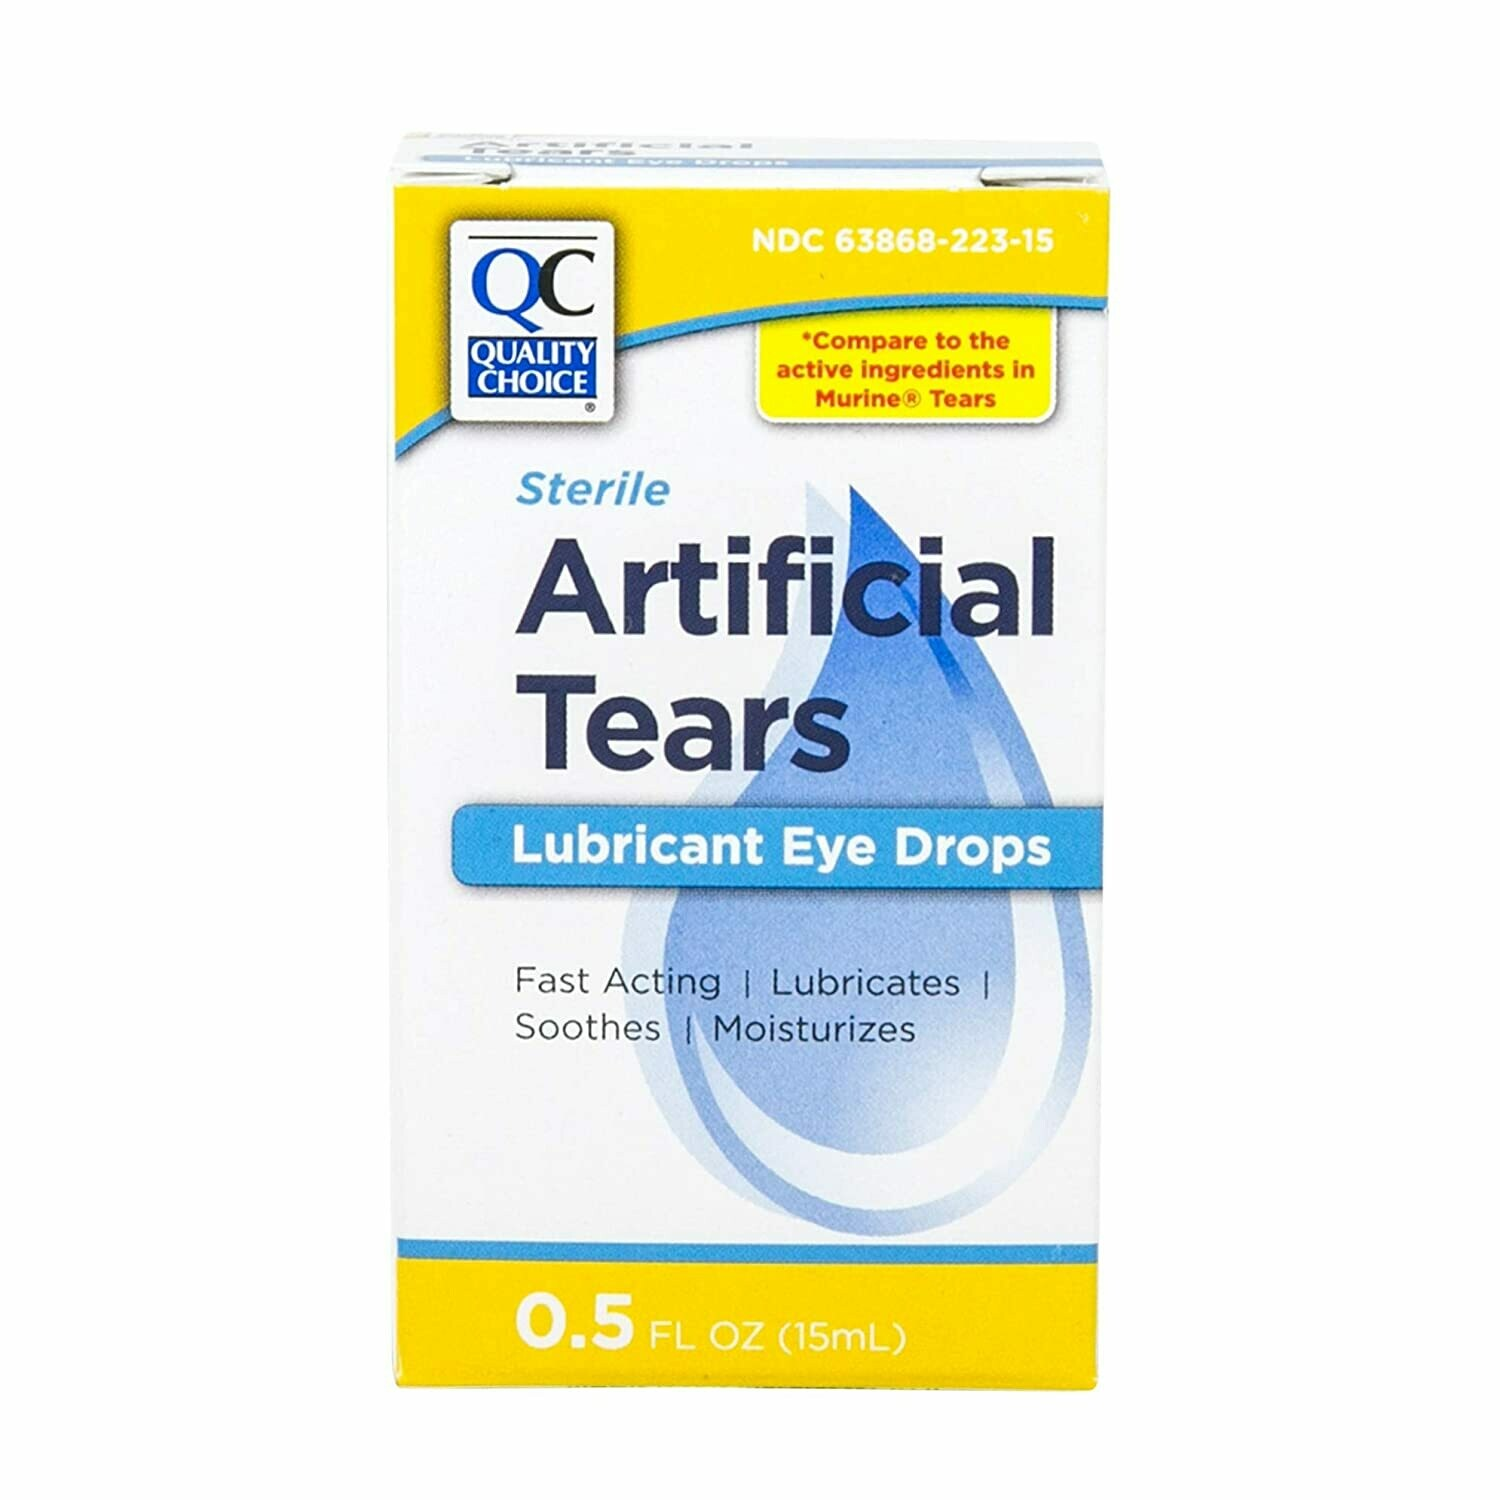 QC Artificial Tears Lubricant